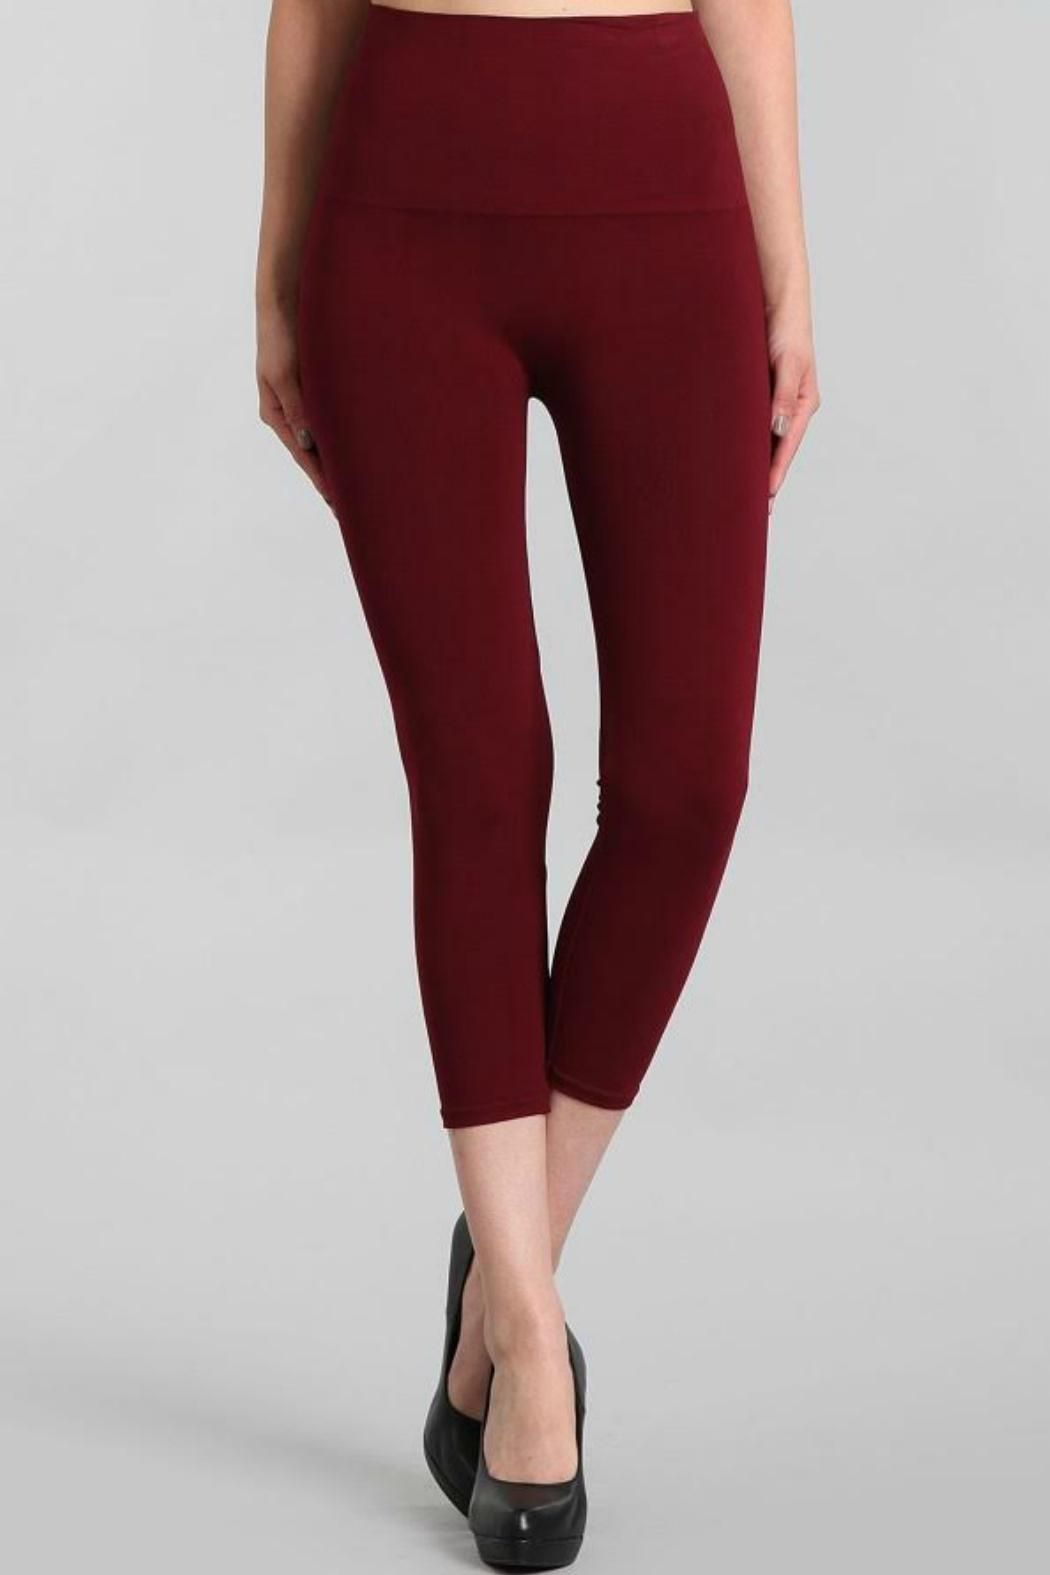 These Leggings Feature A High Waist And Tummy Tuck Wear With Tunics Or Dresses Paired Flats Sandals Cropped By M Rena